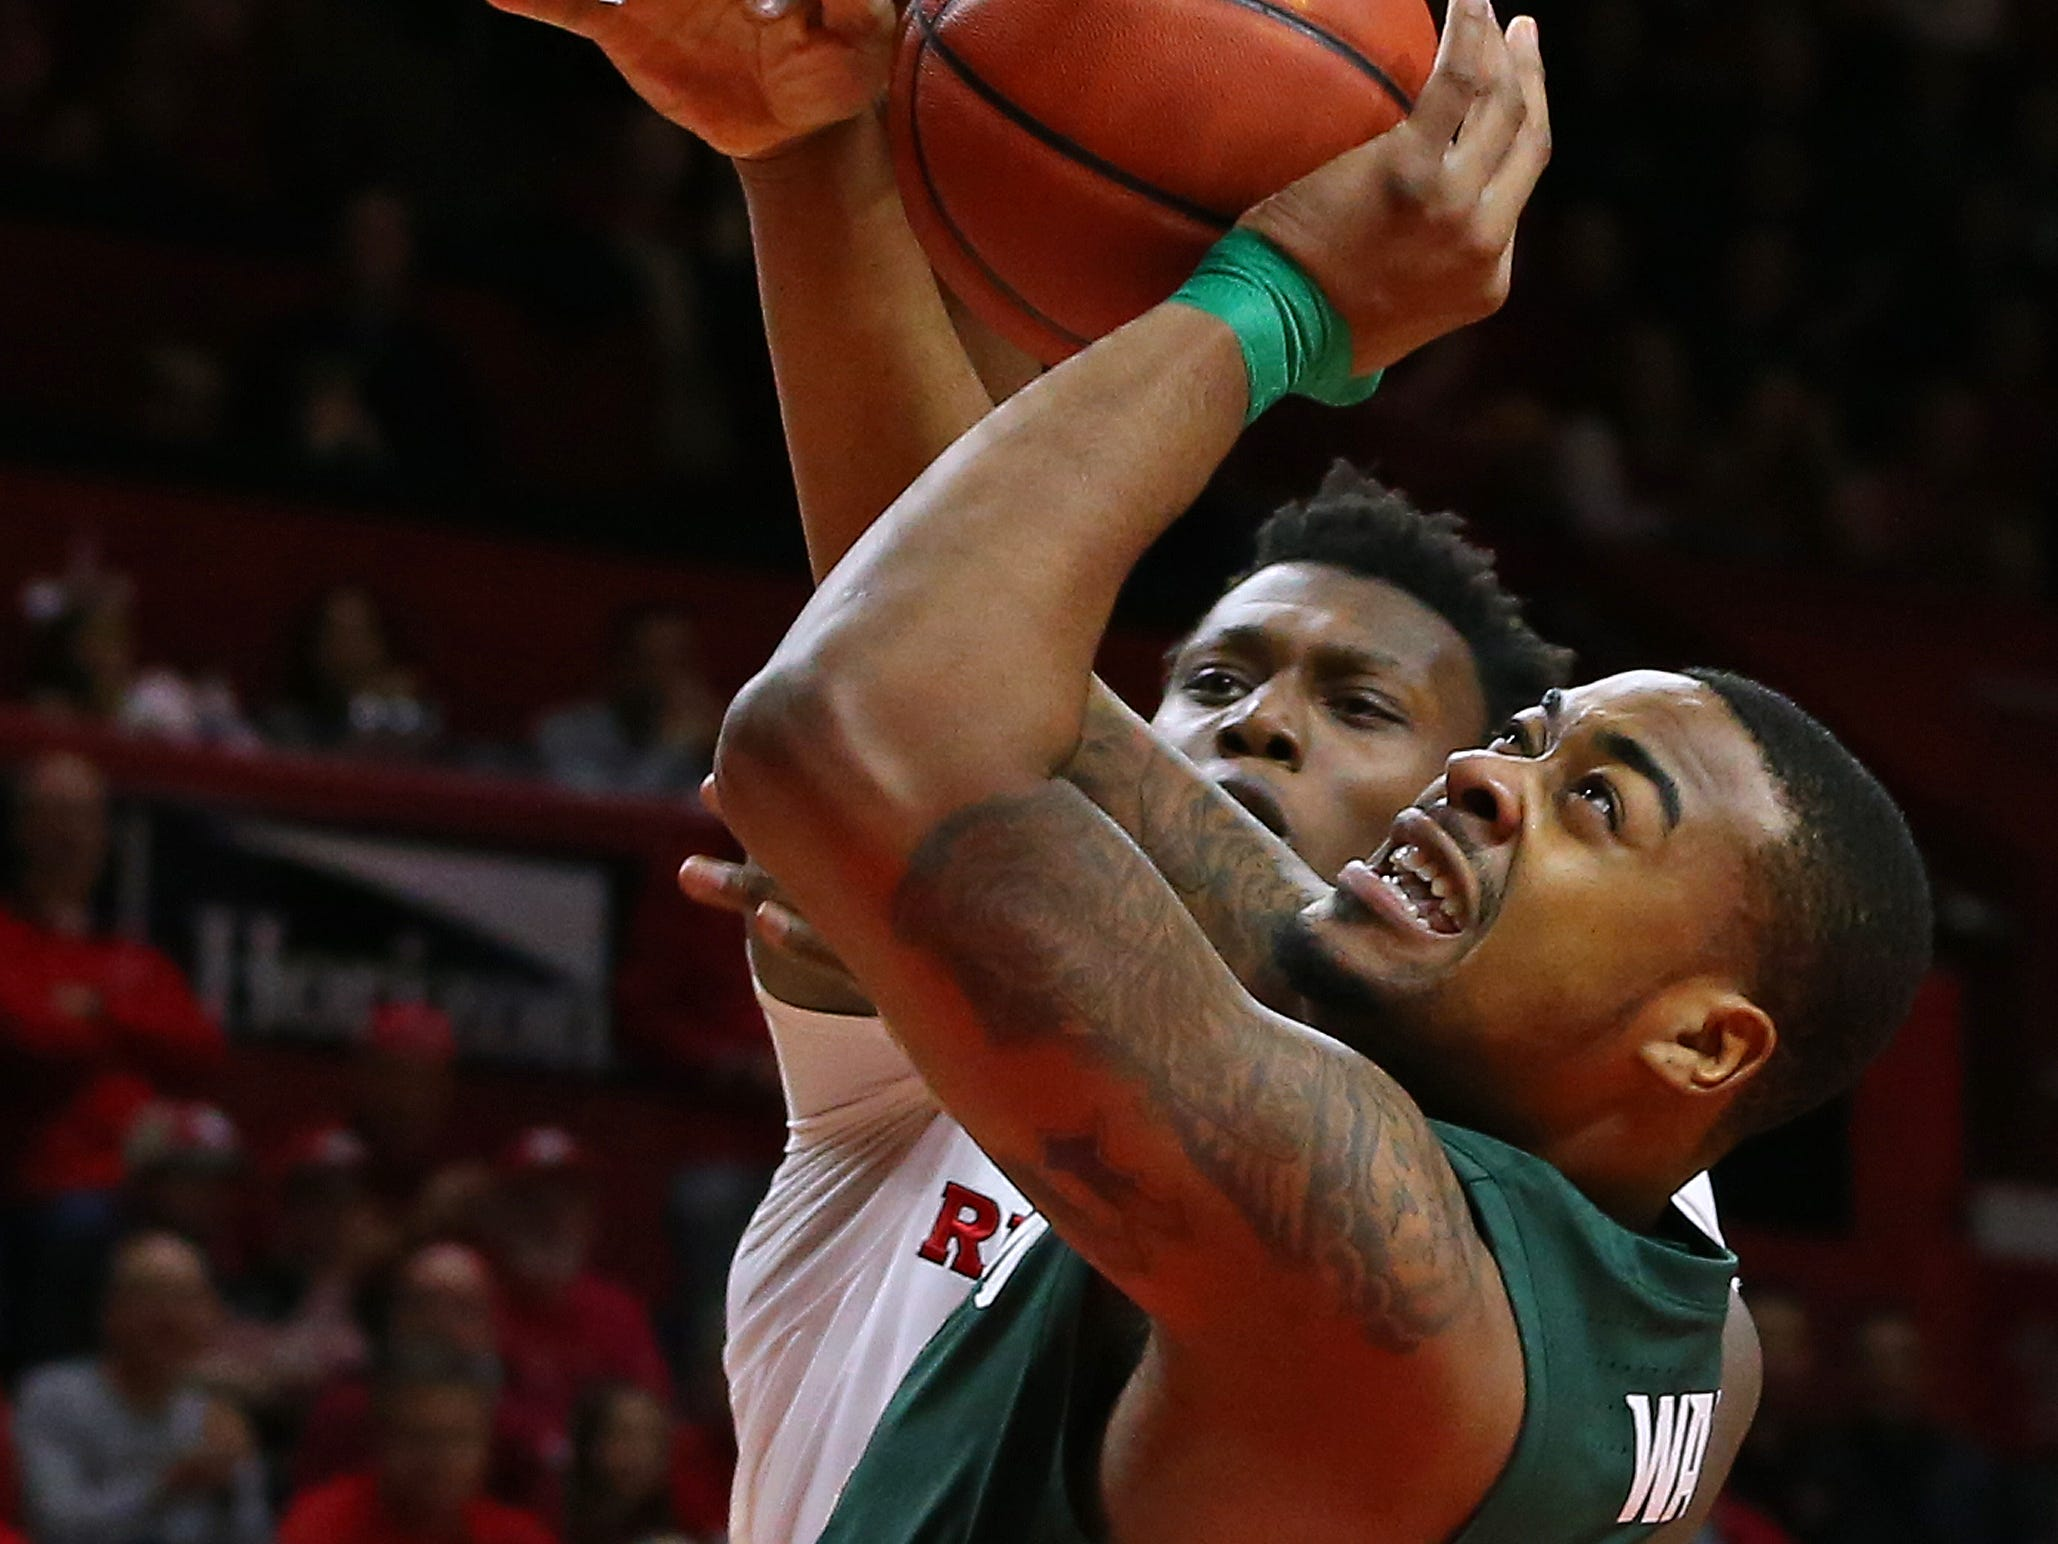 Nick Ward #44 of the Michigan State Spartans attempts a shot as Shaquille Doorson #2 of the Rutgers Scarlet Knights defends during the first half of a college basketball game at the Rutgers Athletic Center on November 30, 2018 in Piscataway, New Jersey. Michigan State defeated Rutgers 78-67.